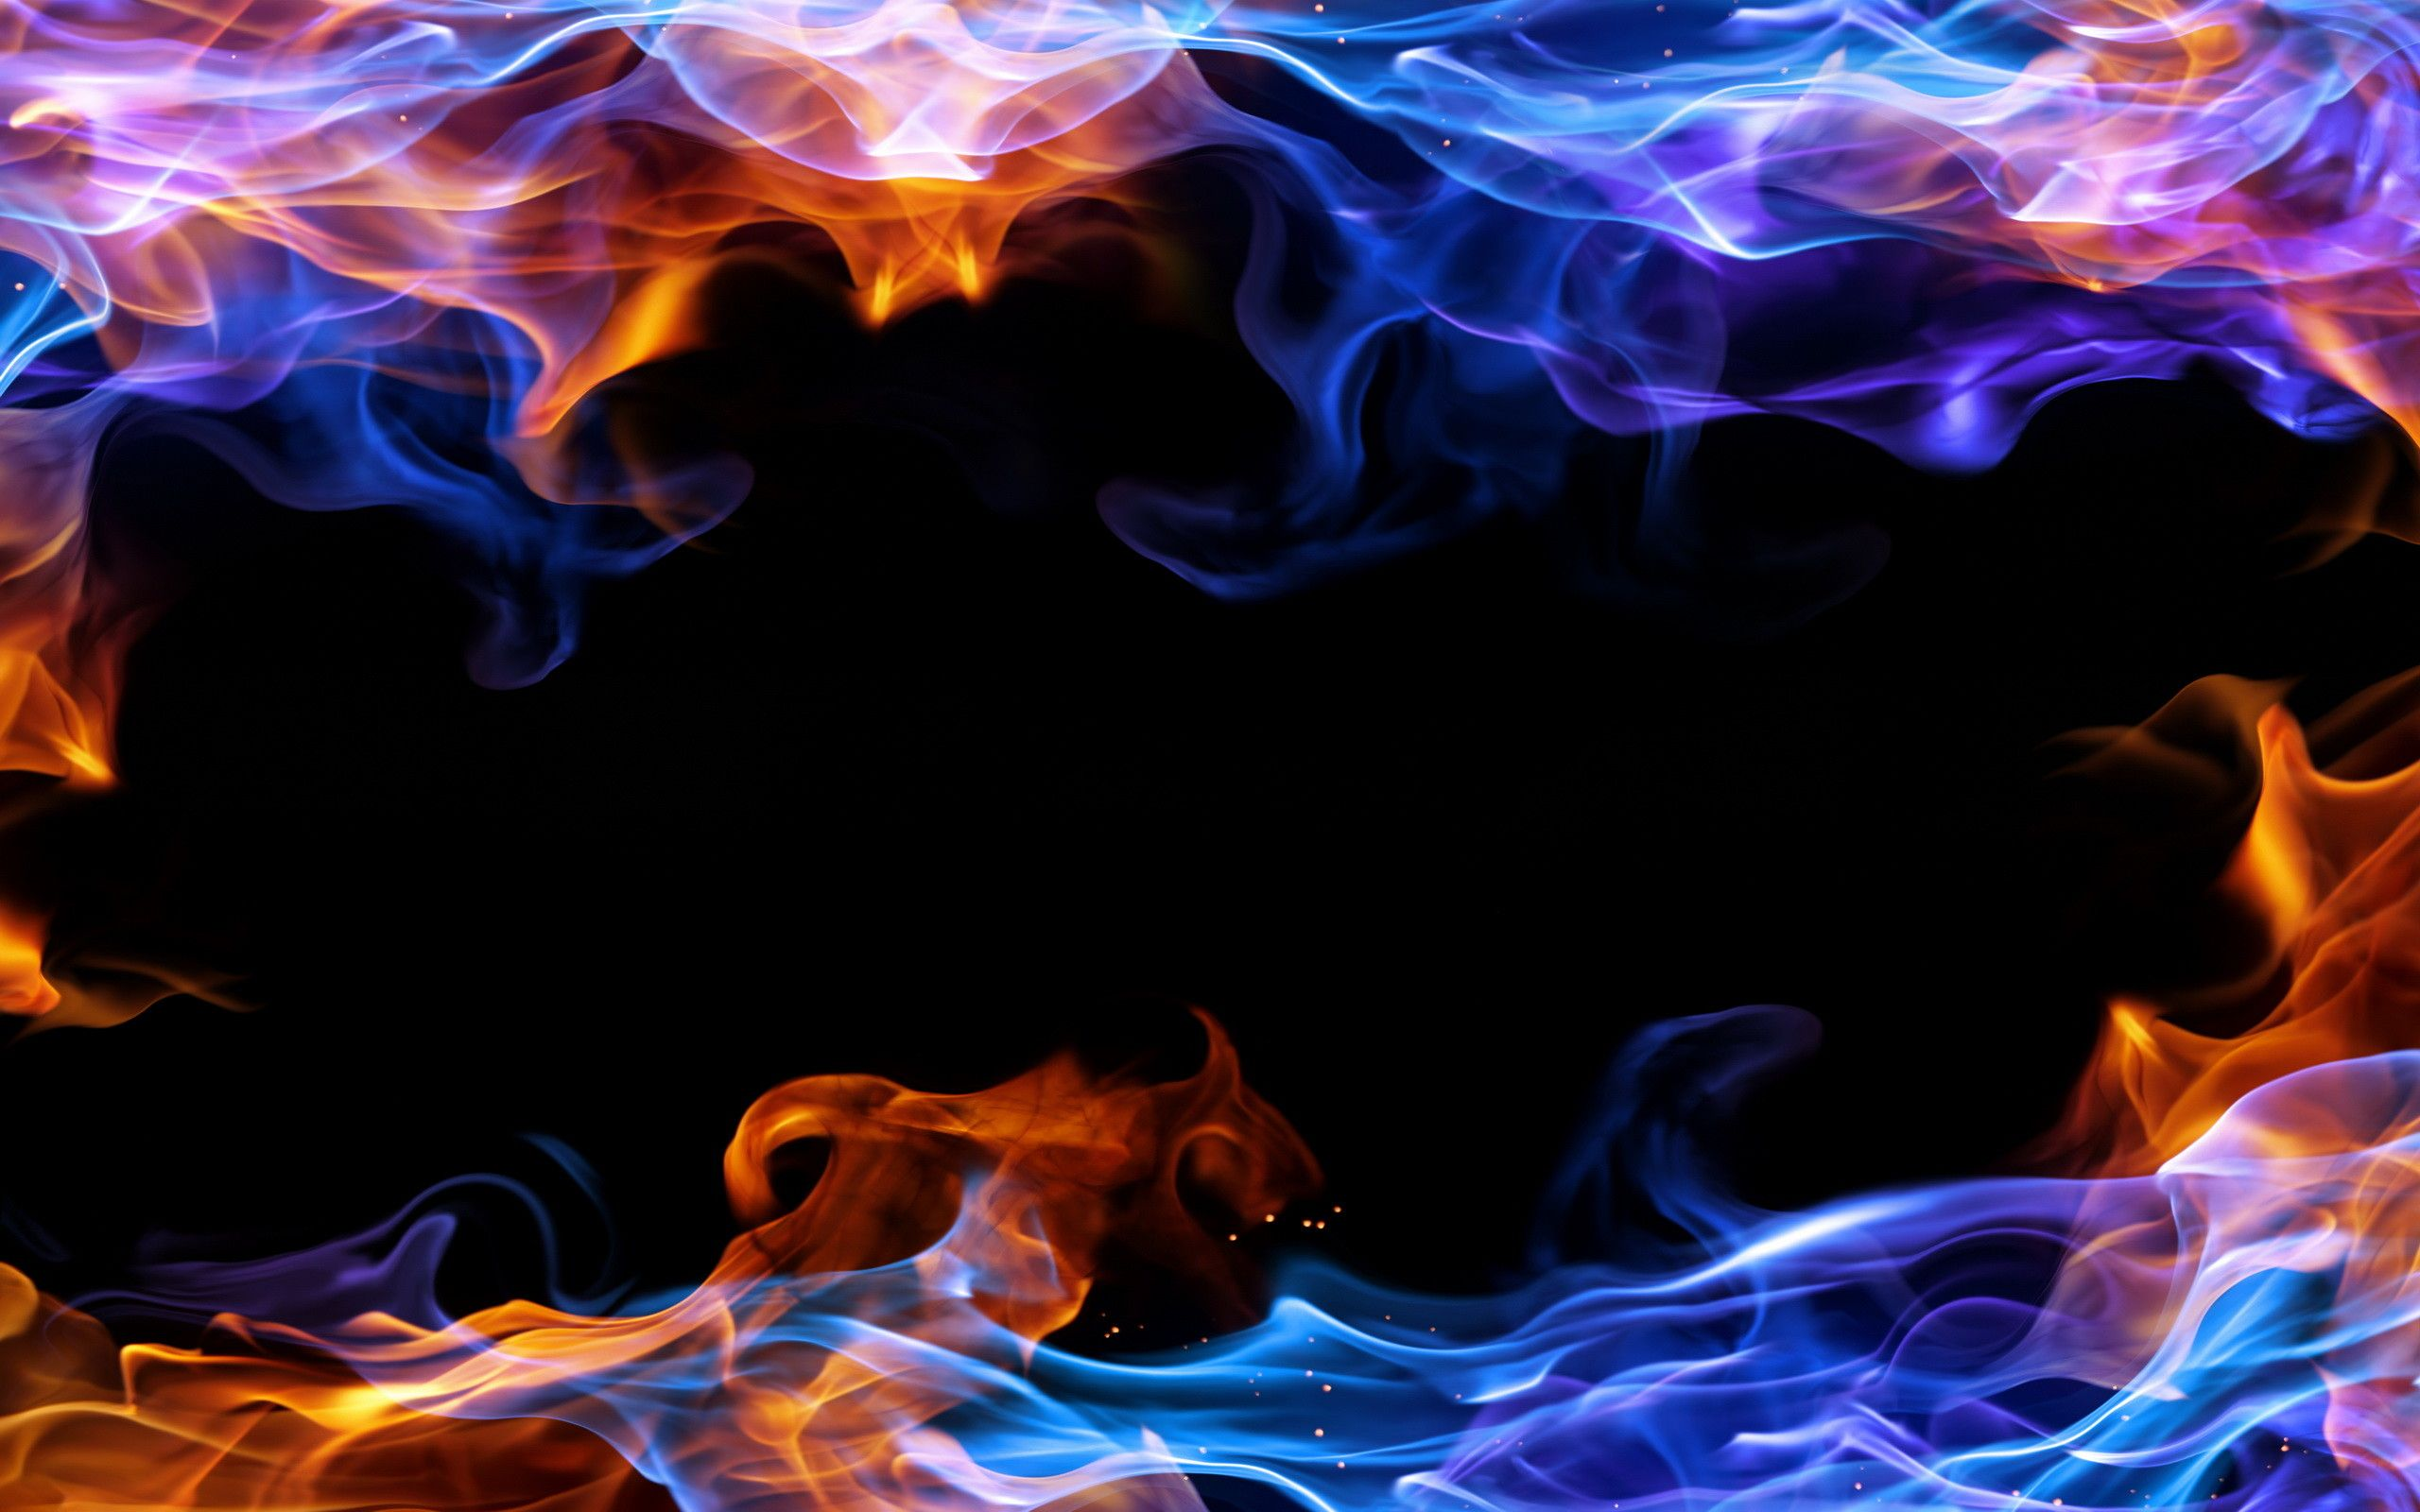 Popular Blue Fire Wallpaper Hd 2560x1600 For Android Tablet Smoke Background Fire Image Fire Art